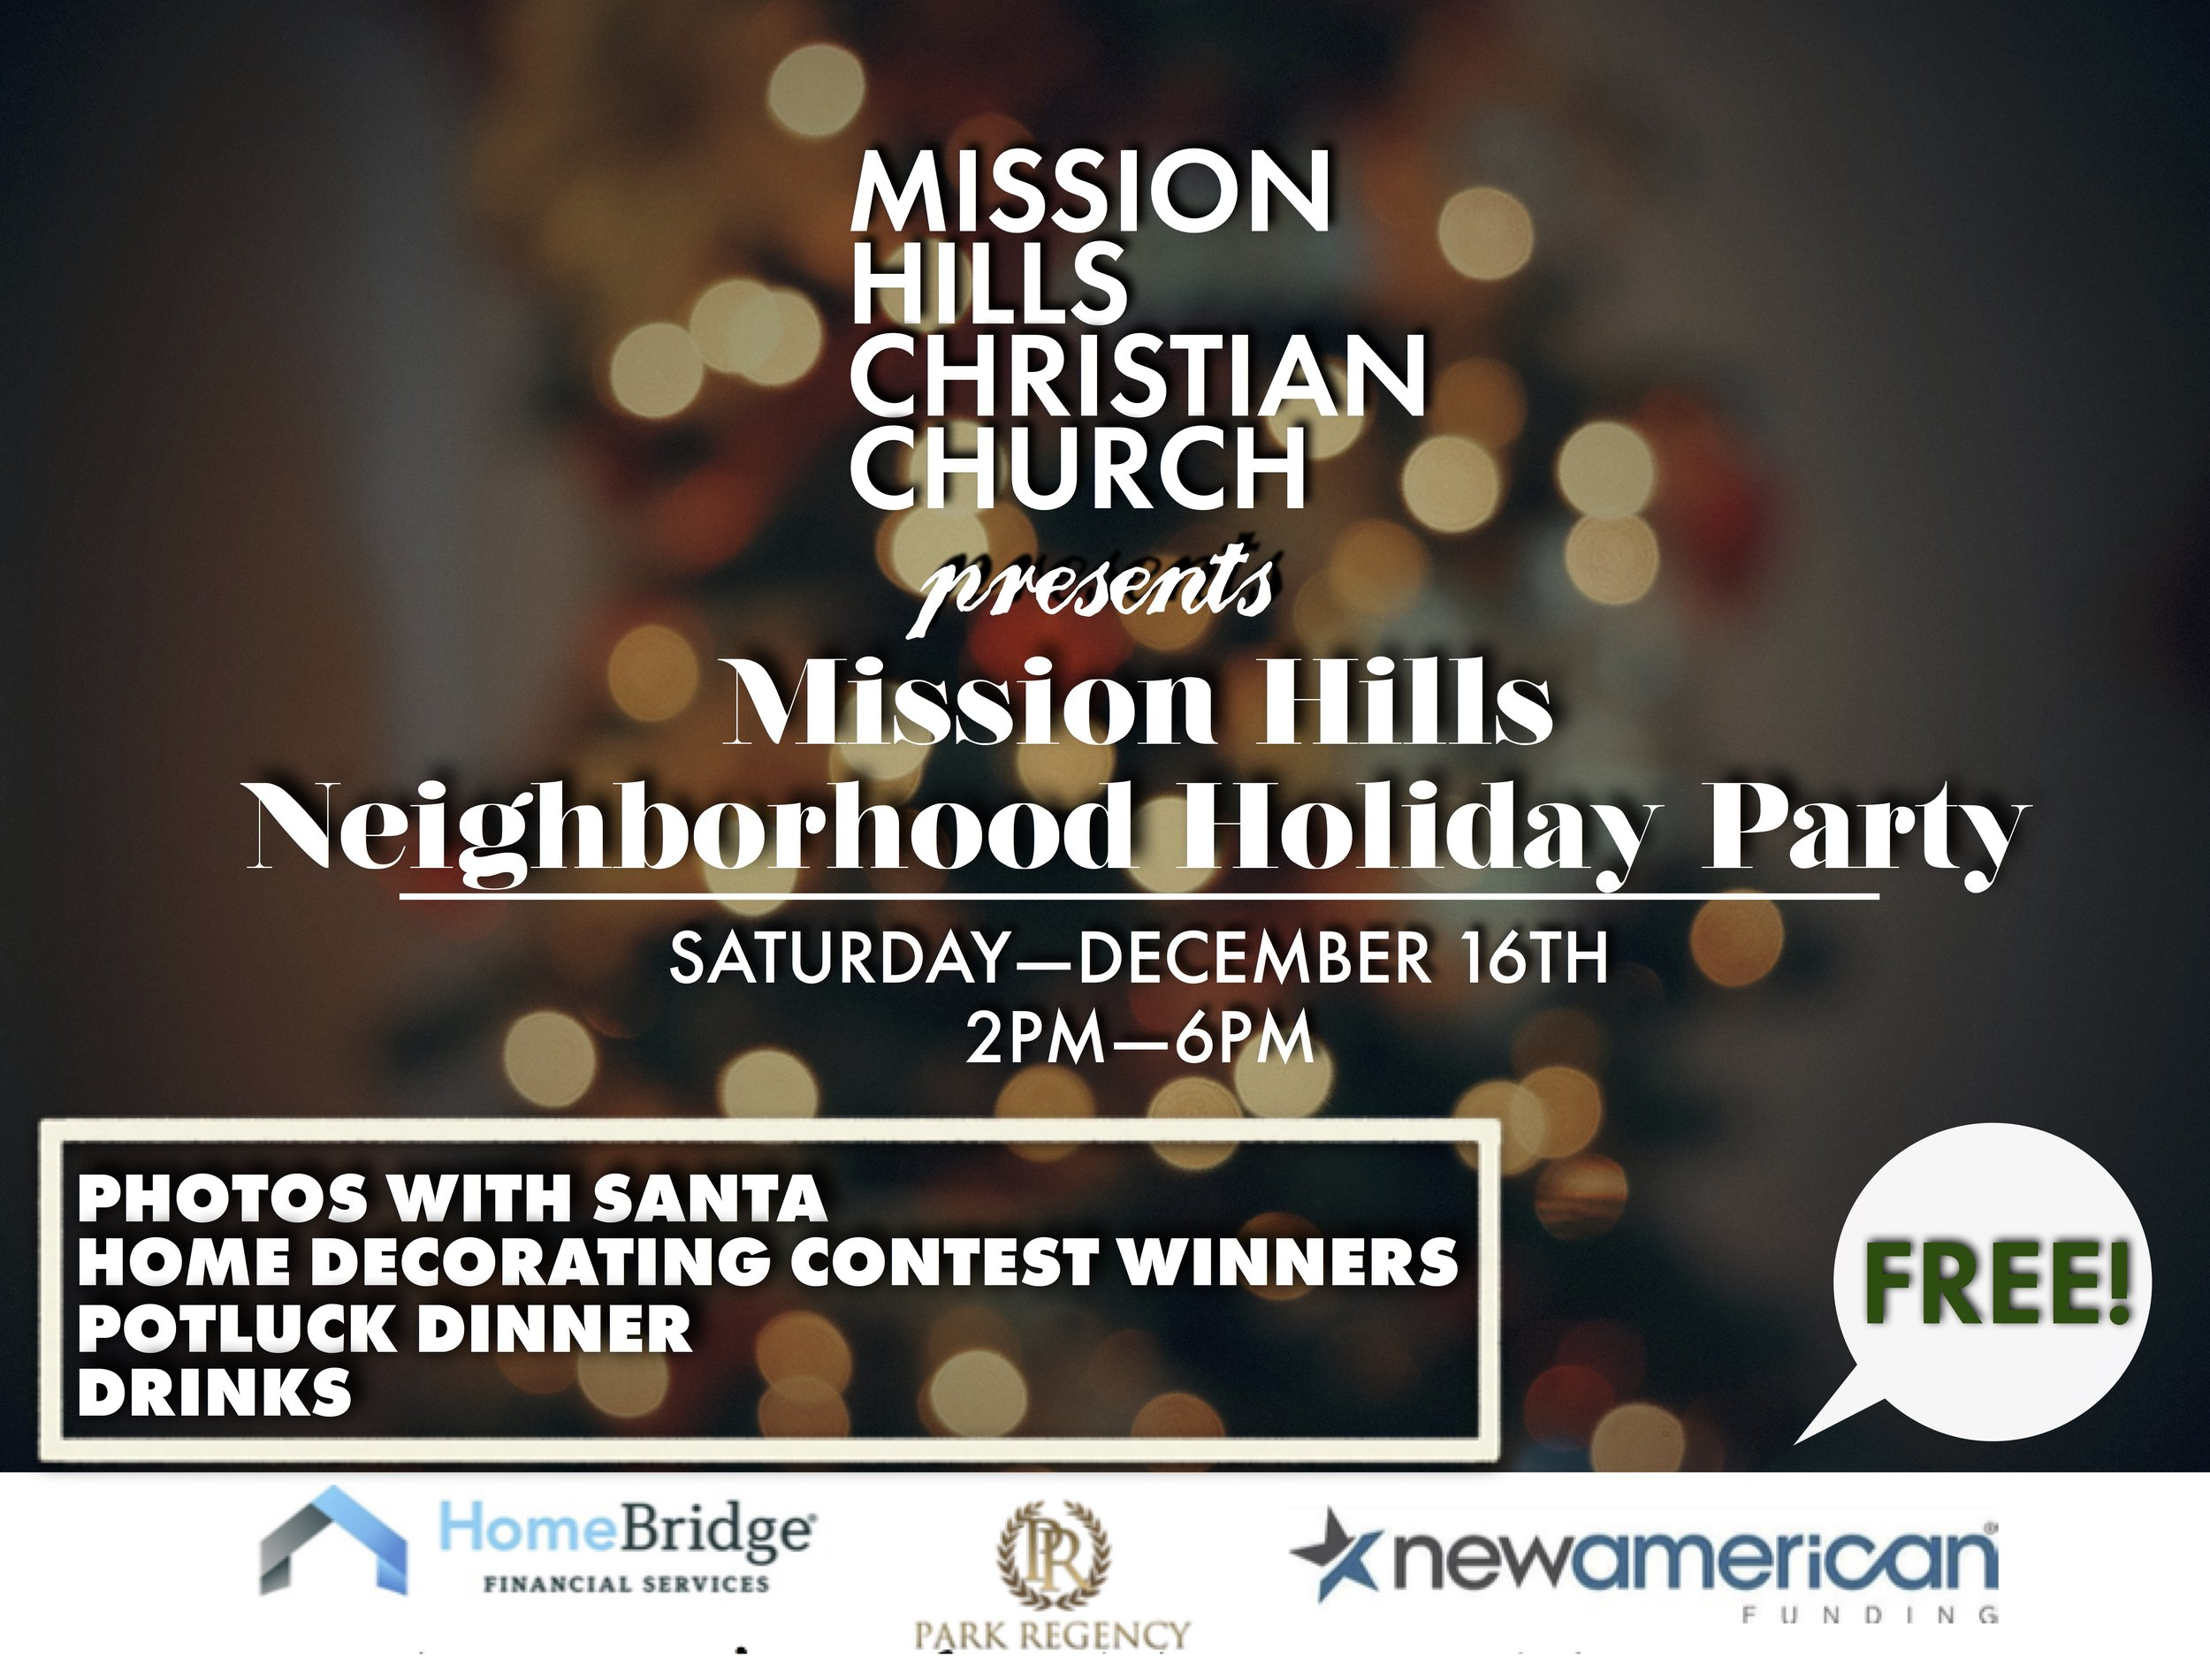 mission-hills-christian-church-los-angeles-holiday-party-small